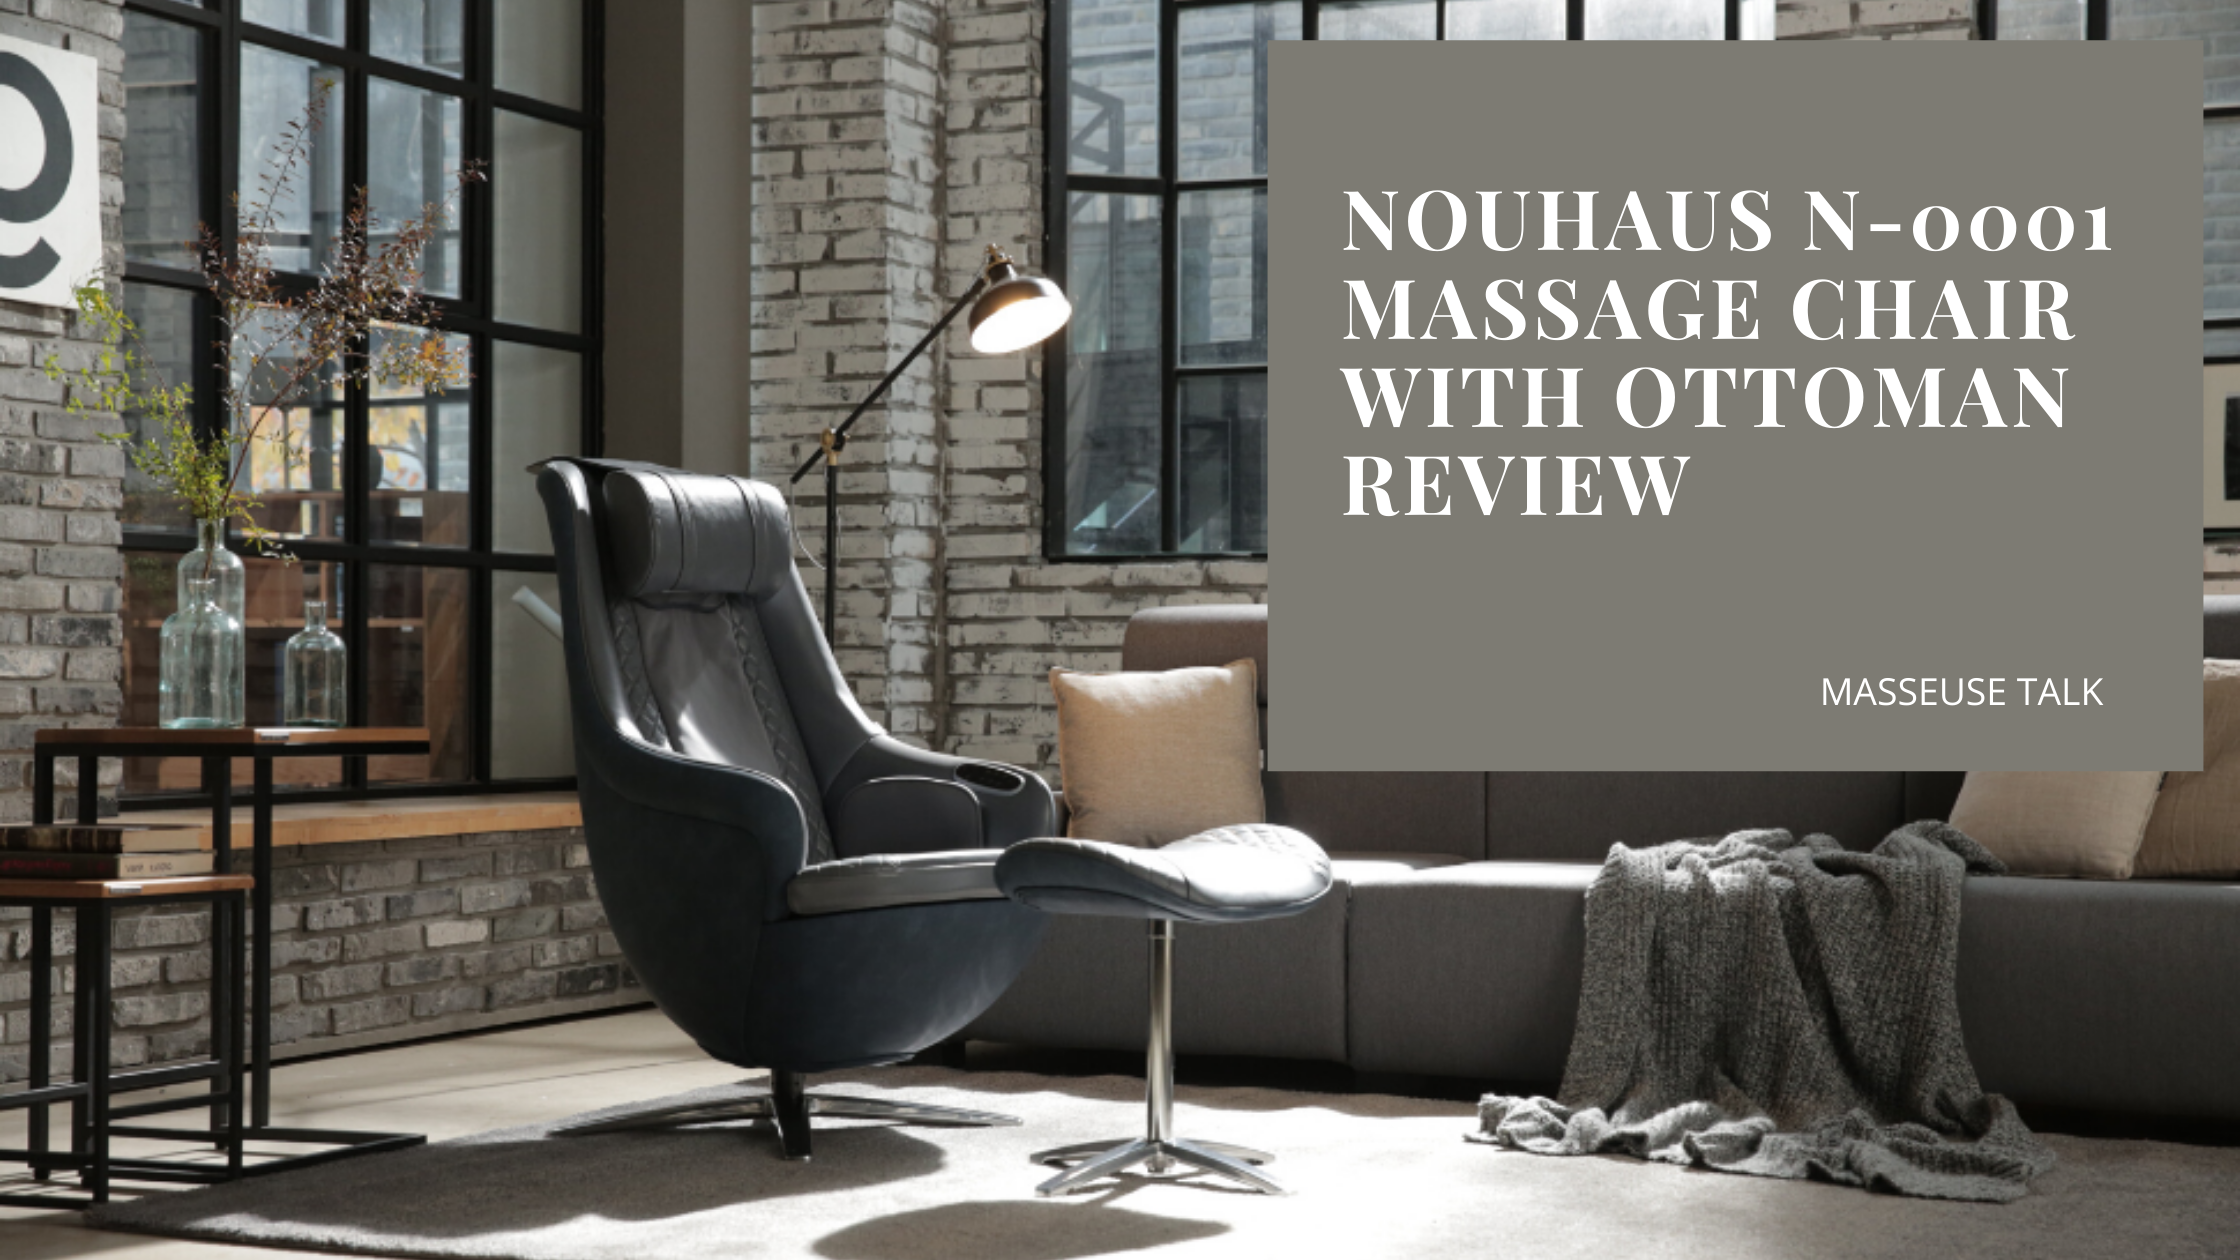 Nouhaus N-0001 Massage Chair